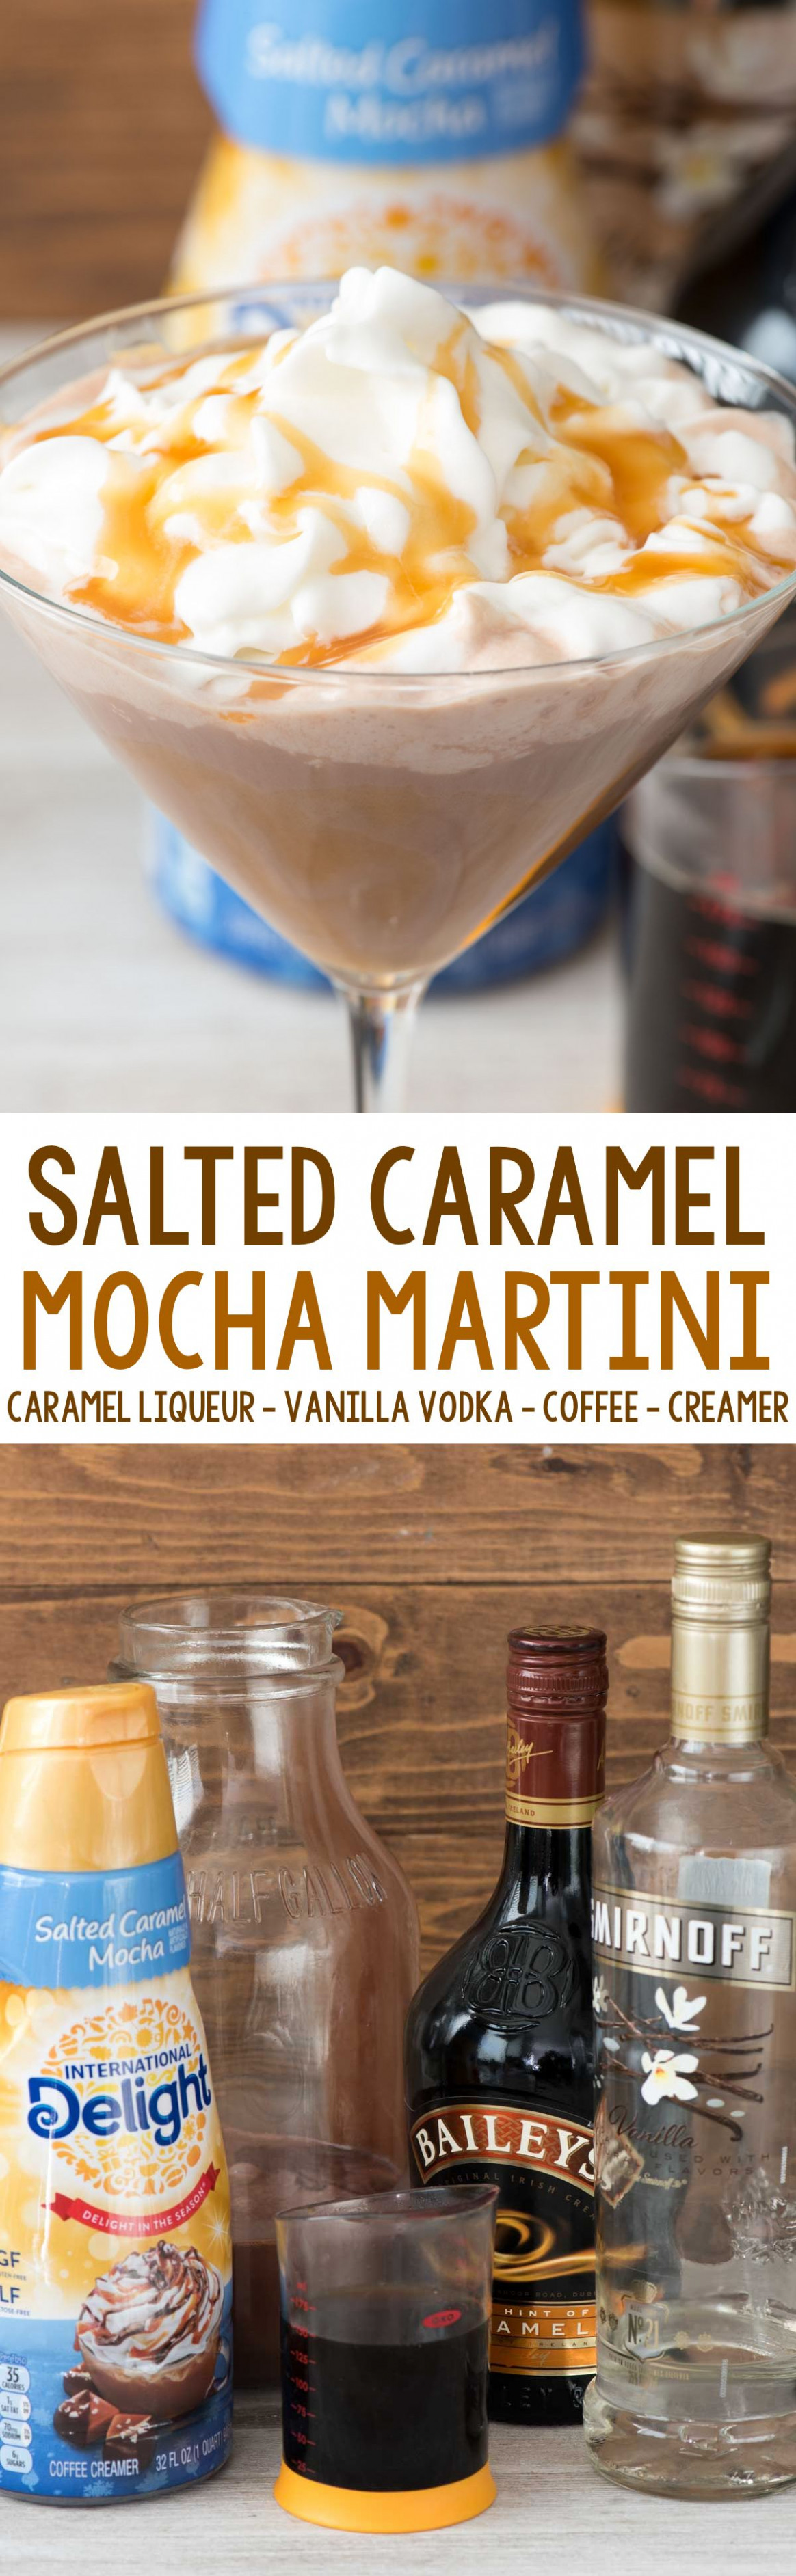 Salted Caramel Mocha Martini - an easy cocktail recipe ...